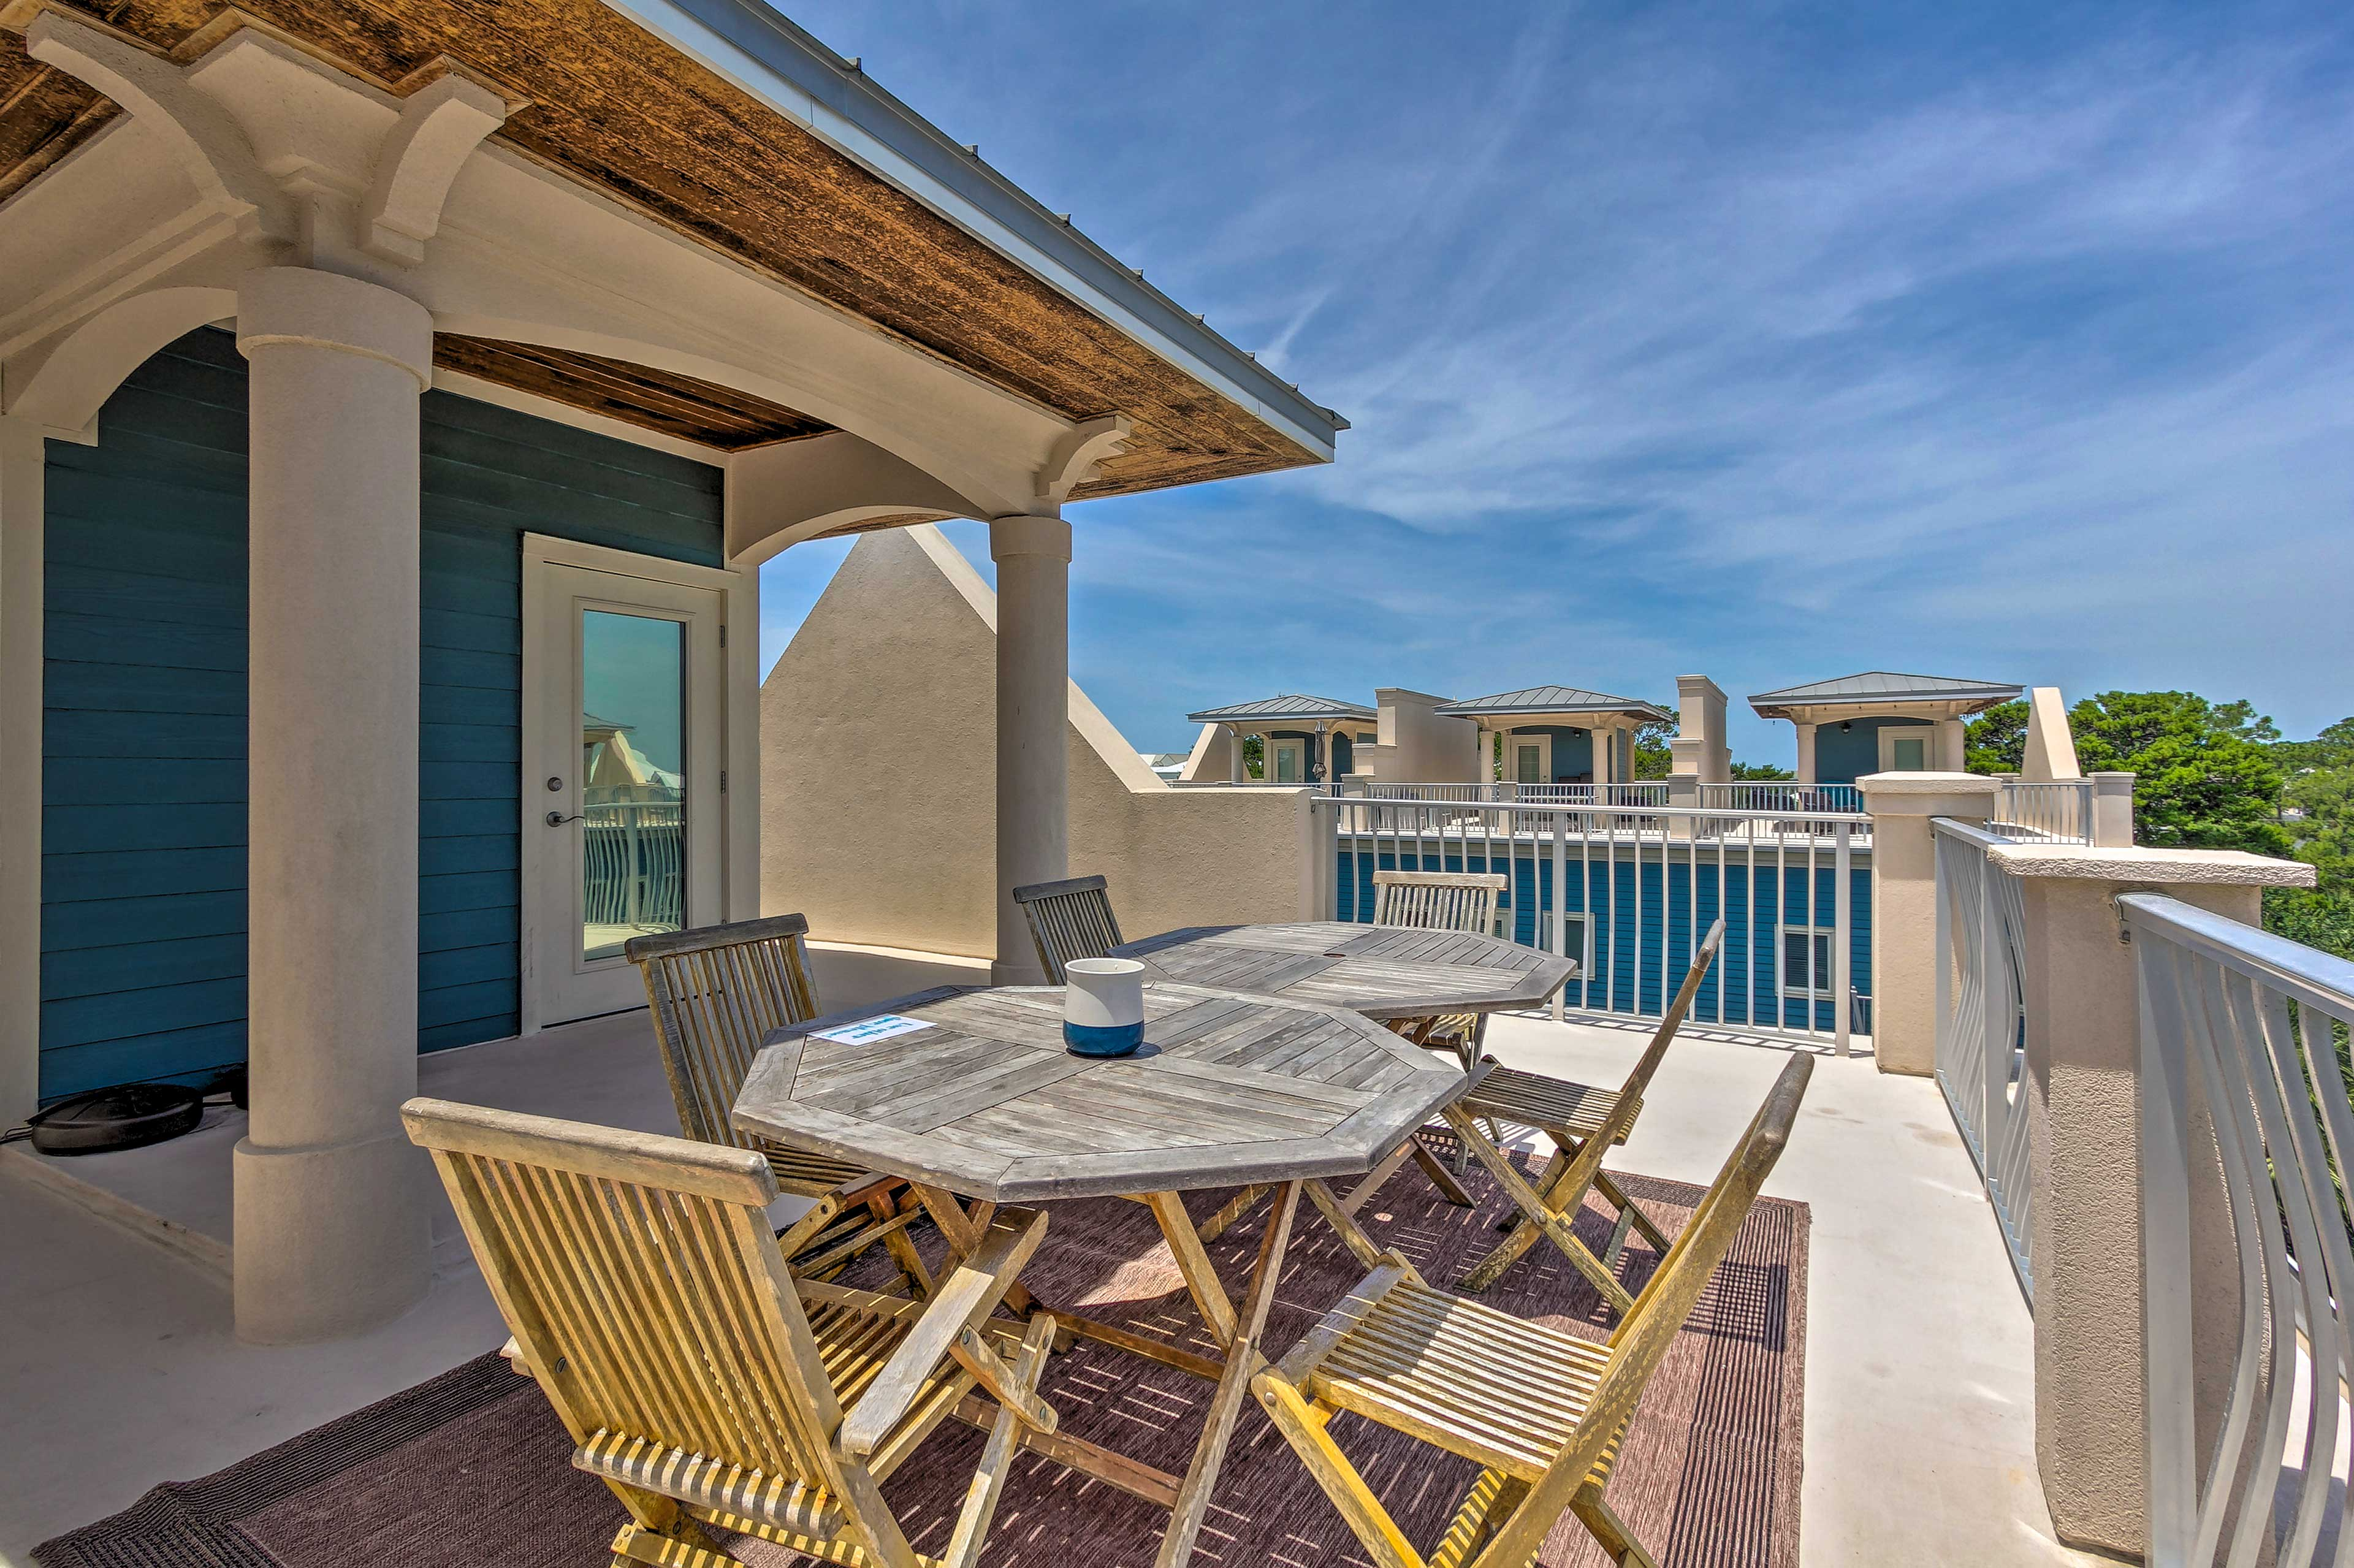 Plan your Santa Rosa Beach retreat to this top-notch townhome located near town!